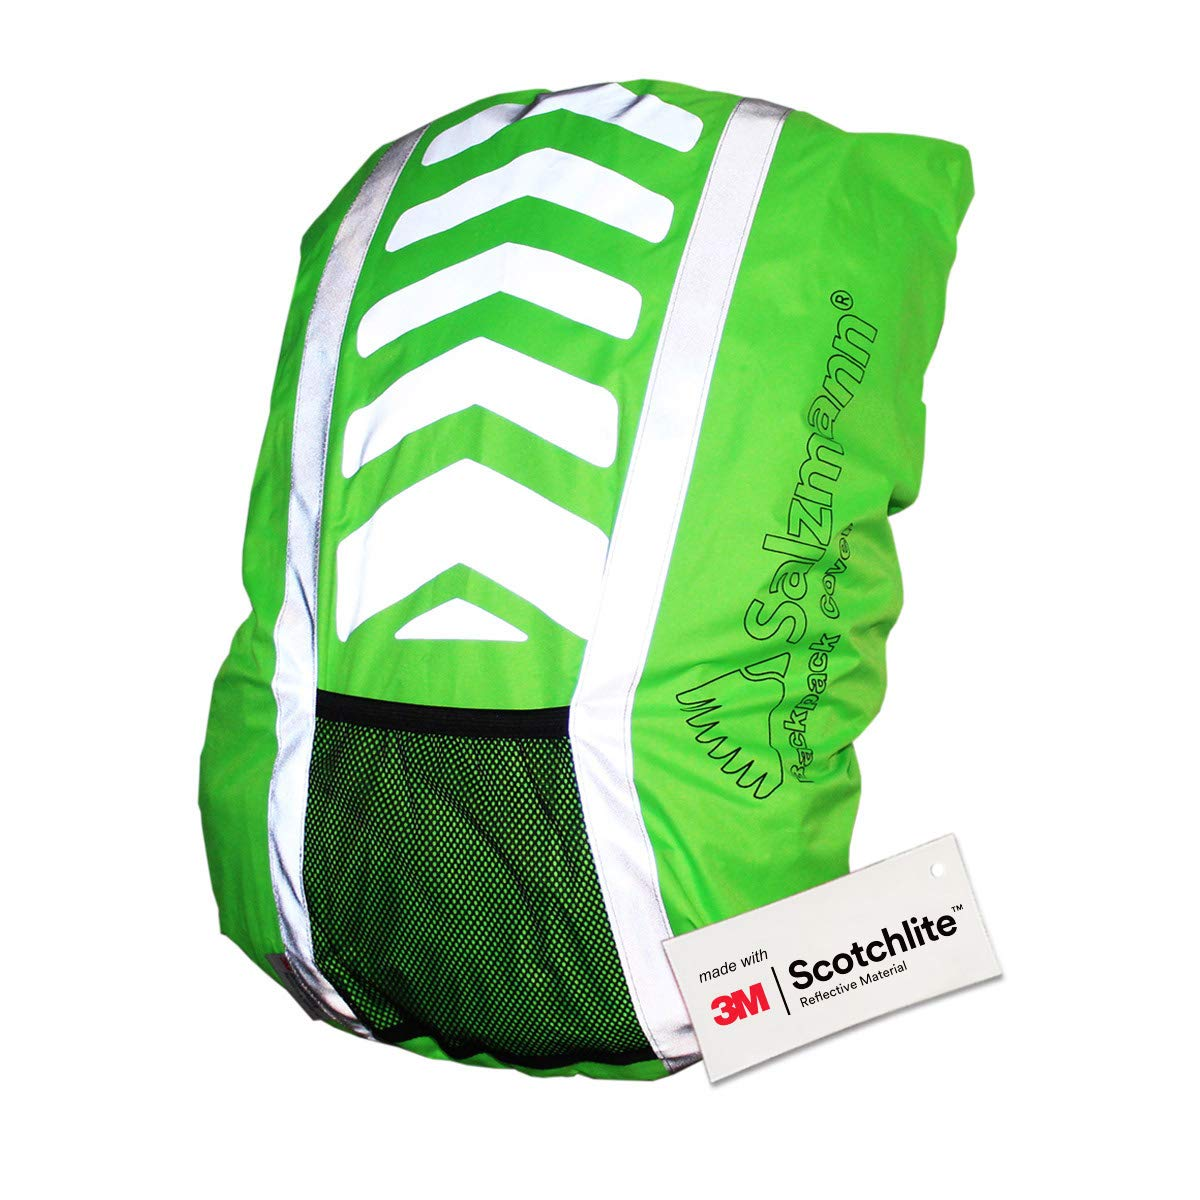 d35ef1cee2b0 Best Rated in Backpack Pack Covers   Helpful Customer Reviews ...